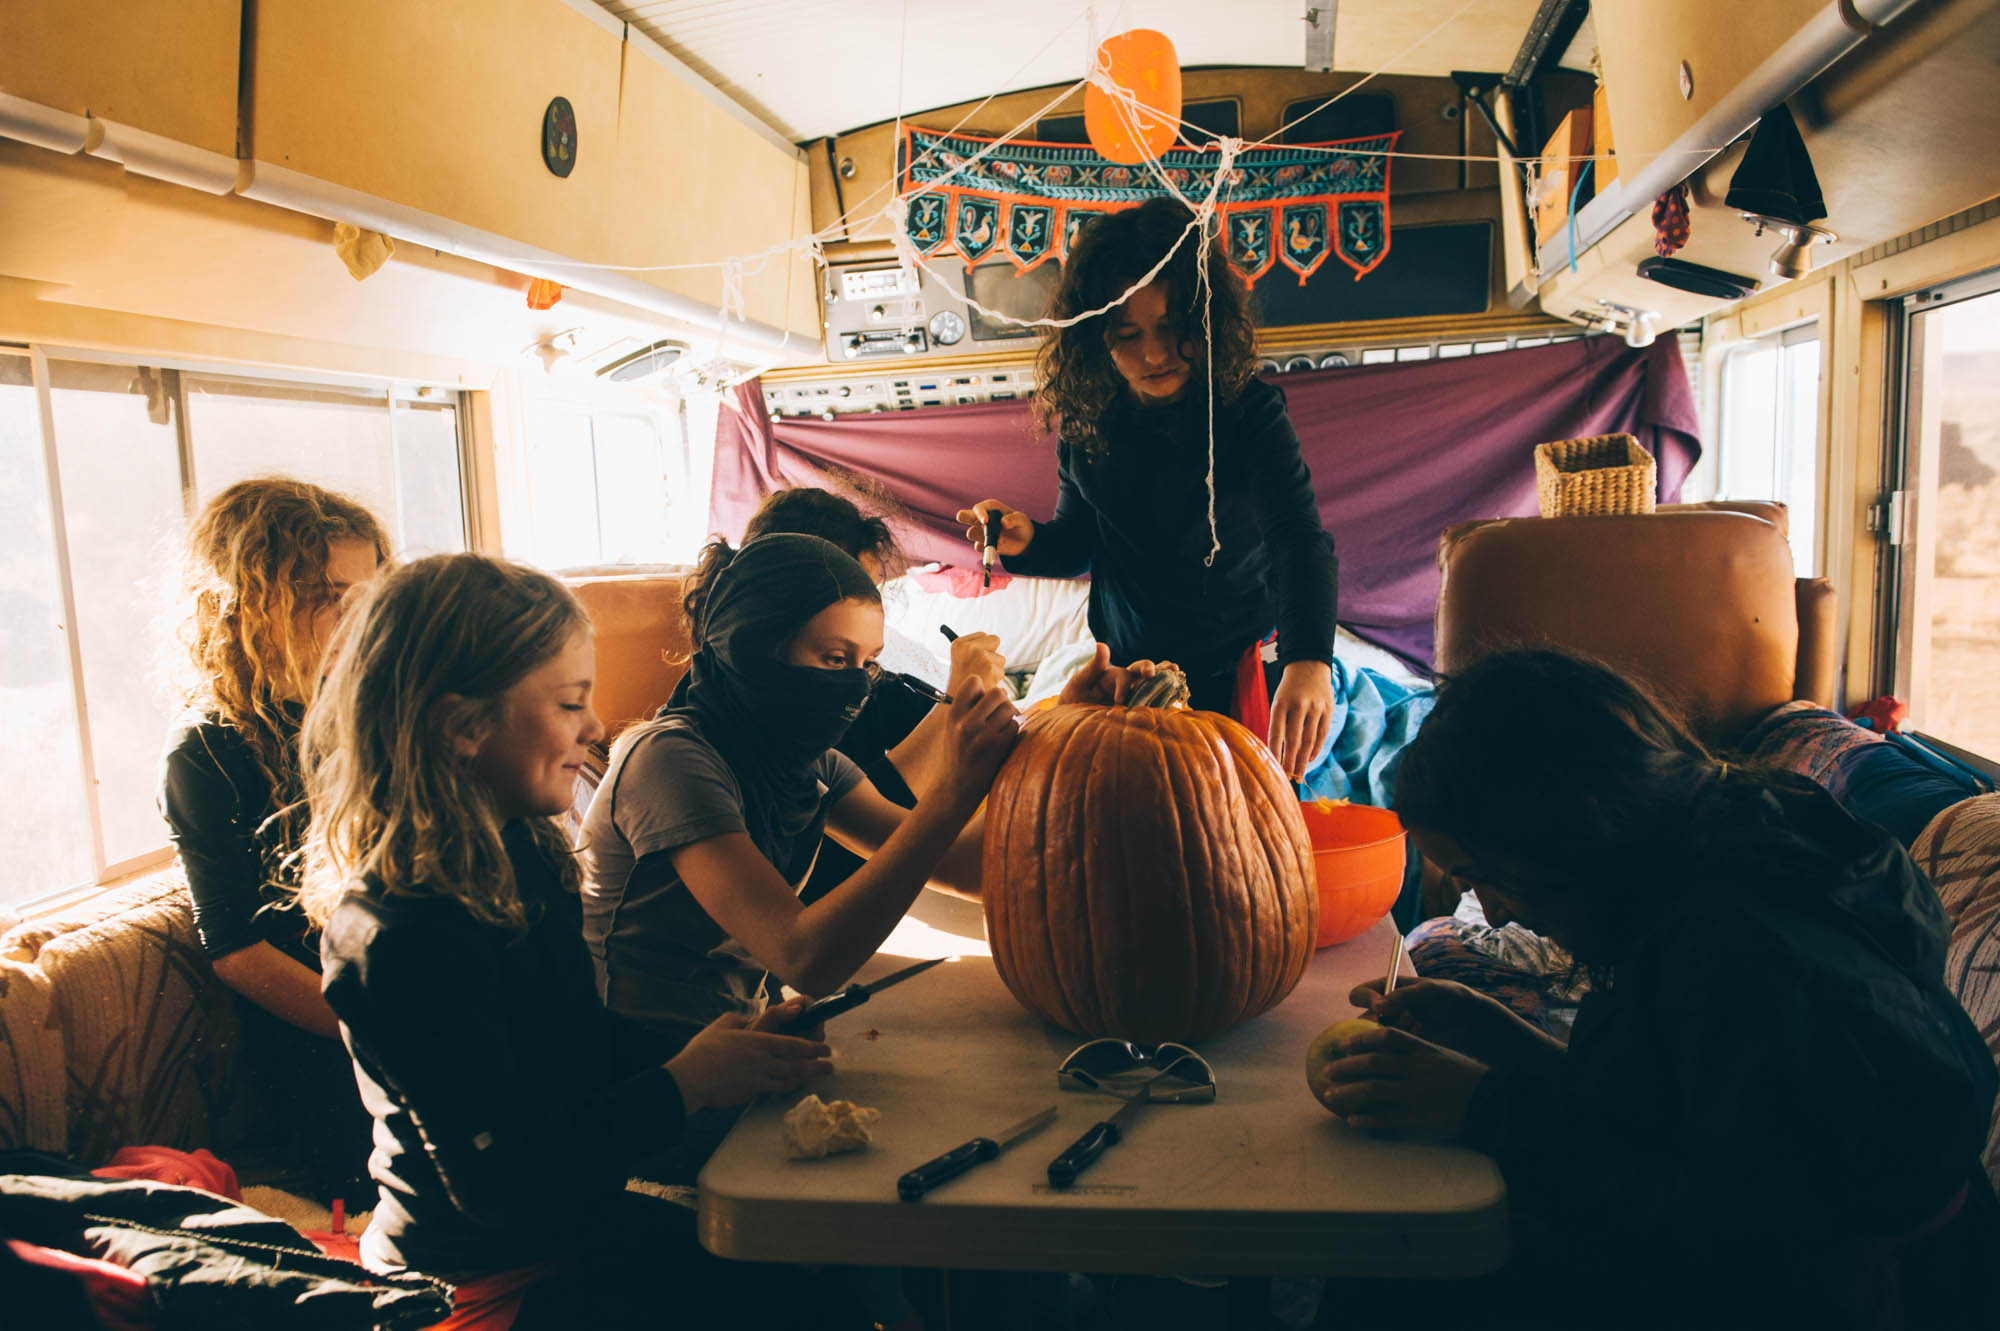 The wind was so crazy that day, we had to move the ninjas inside to finish the pumpkin carving... It was like a desert-storm, sand whisking our faces and all. The ninja costume was perfect!